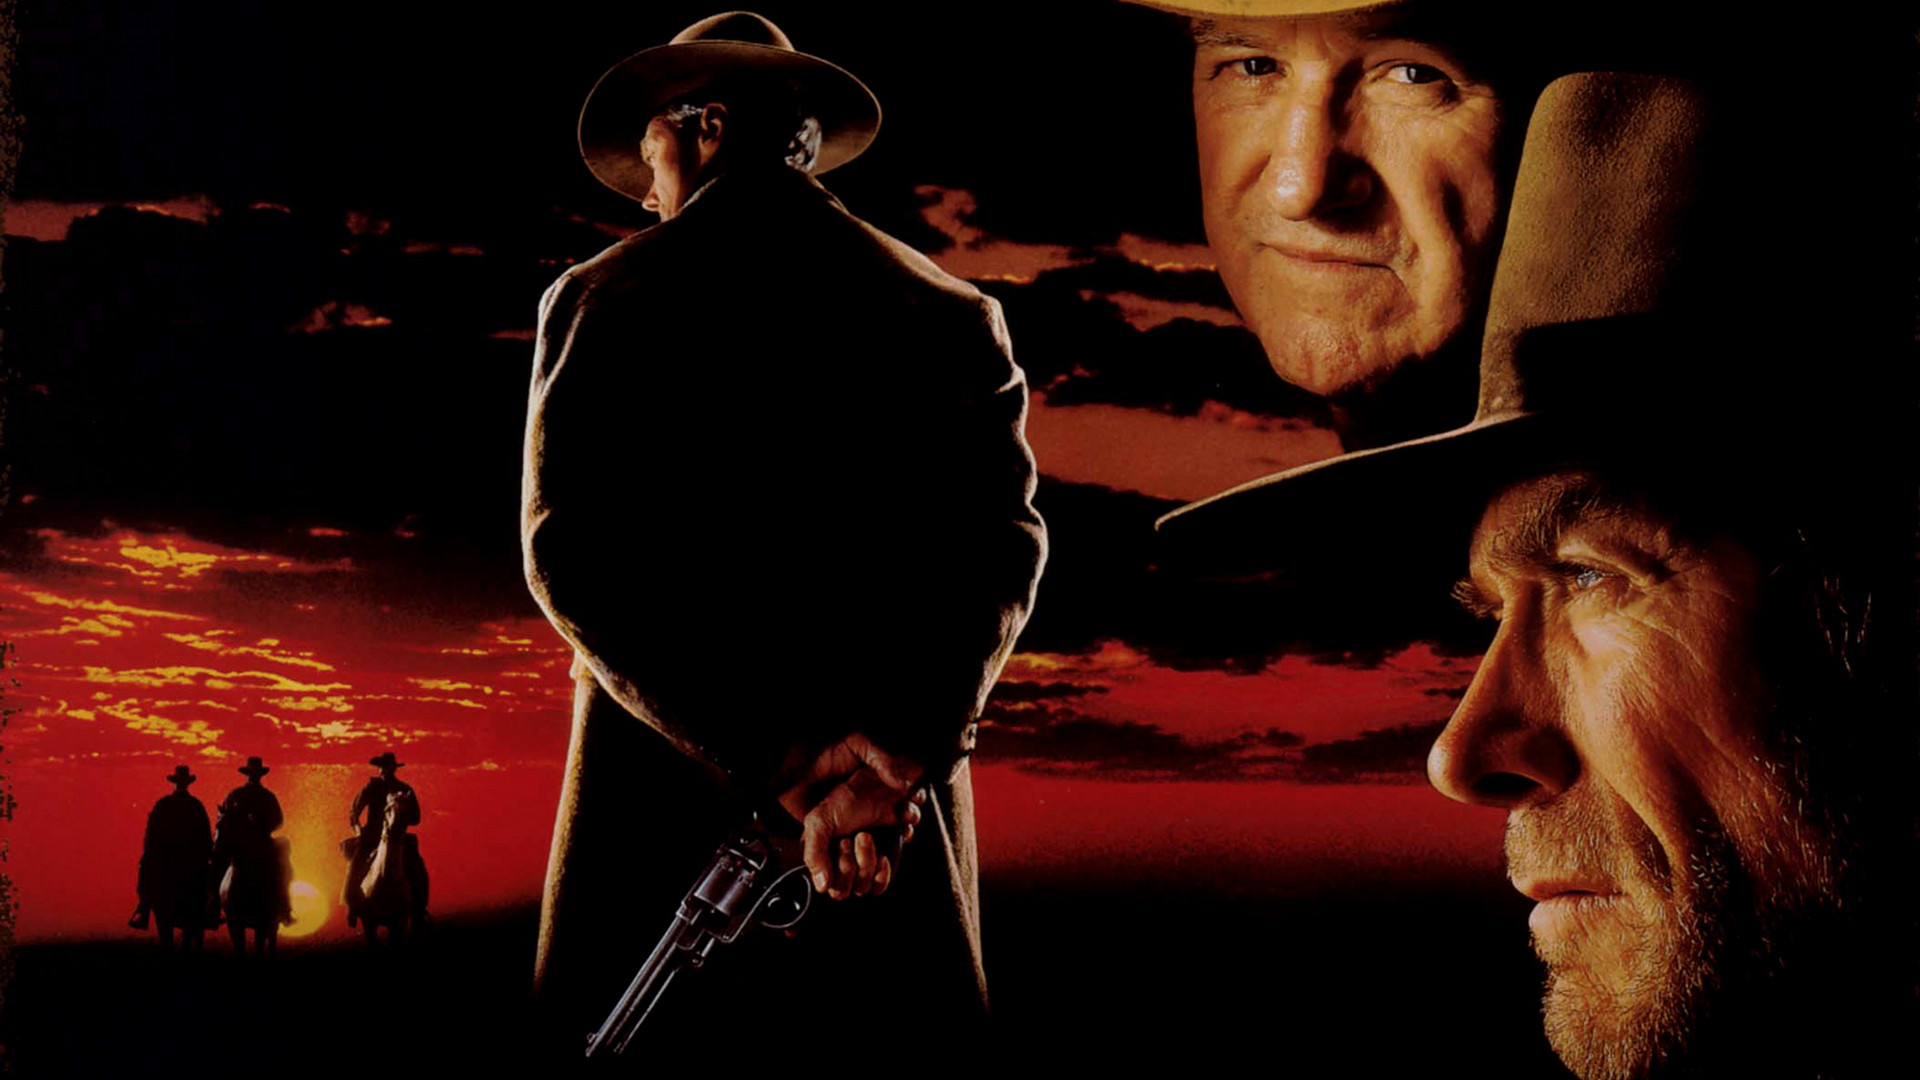 an analysis of the movie unforgiven A complete summary and analysis of the film unforgiven by clint eastwood.